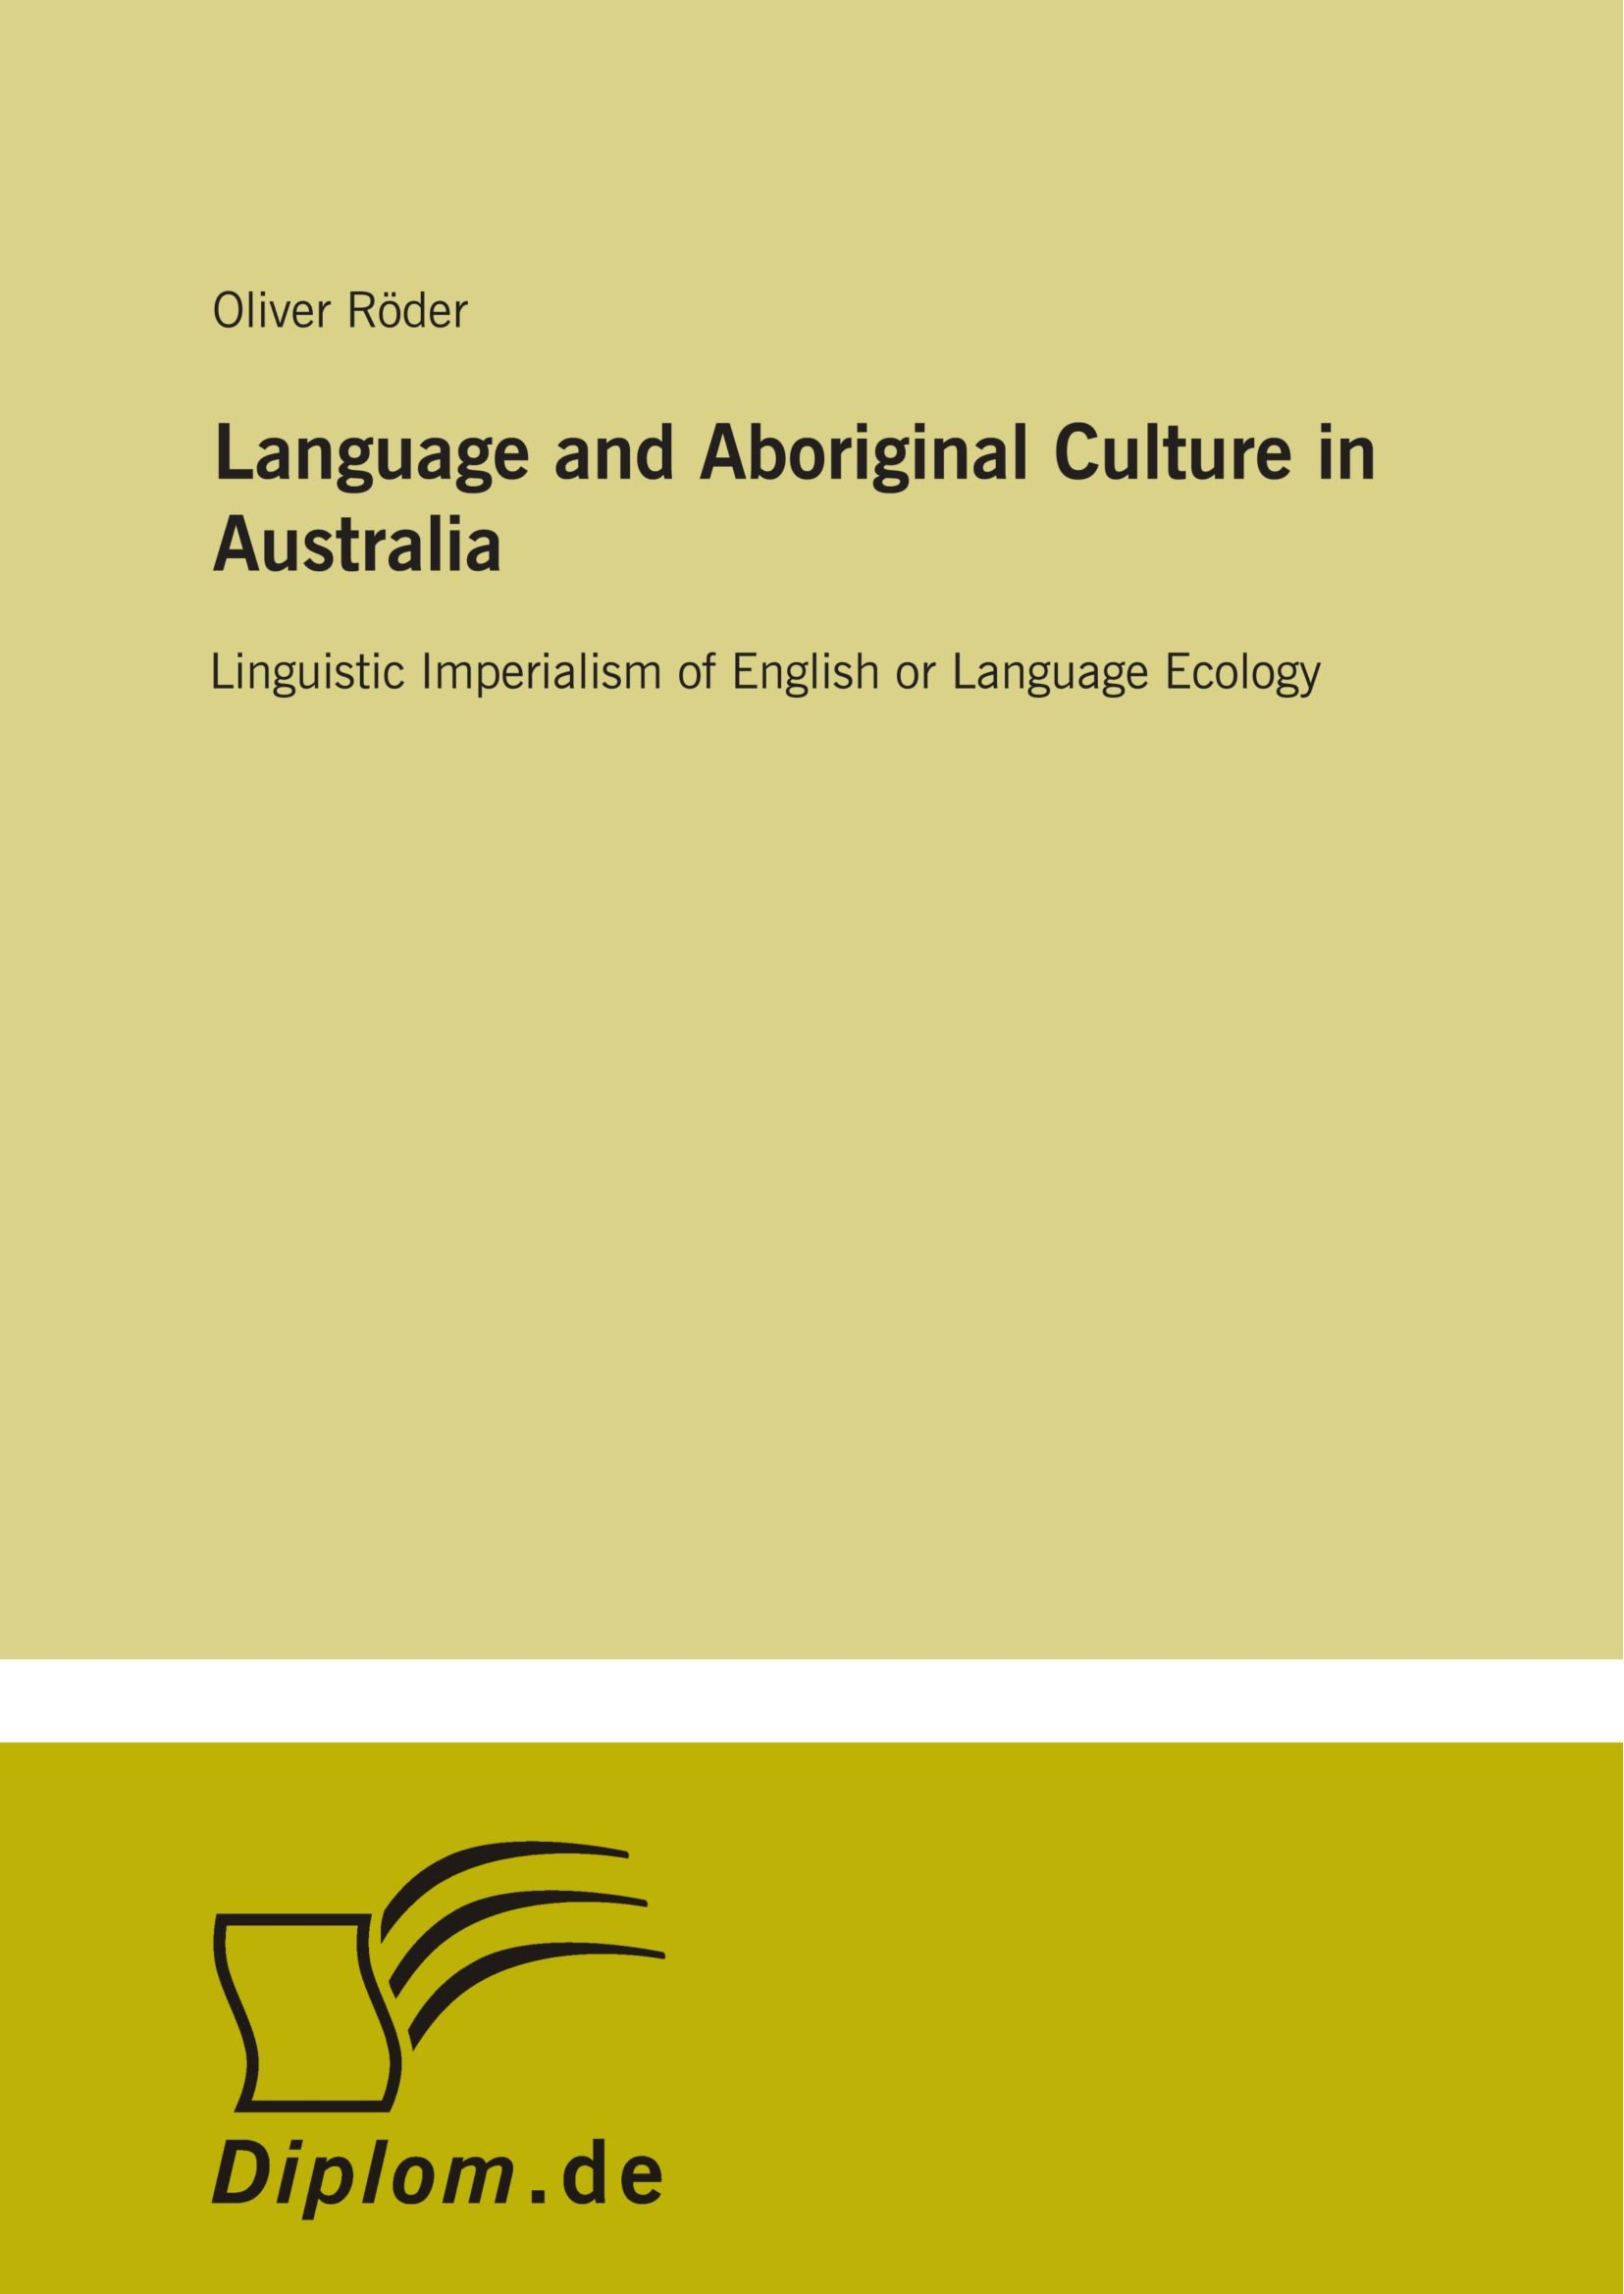 Language and Aboriginal Culture in Australia: Linguistic Imperialism of English or Language Ecology by Diplomarbeiten Agentur diplom.de